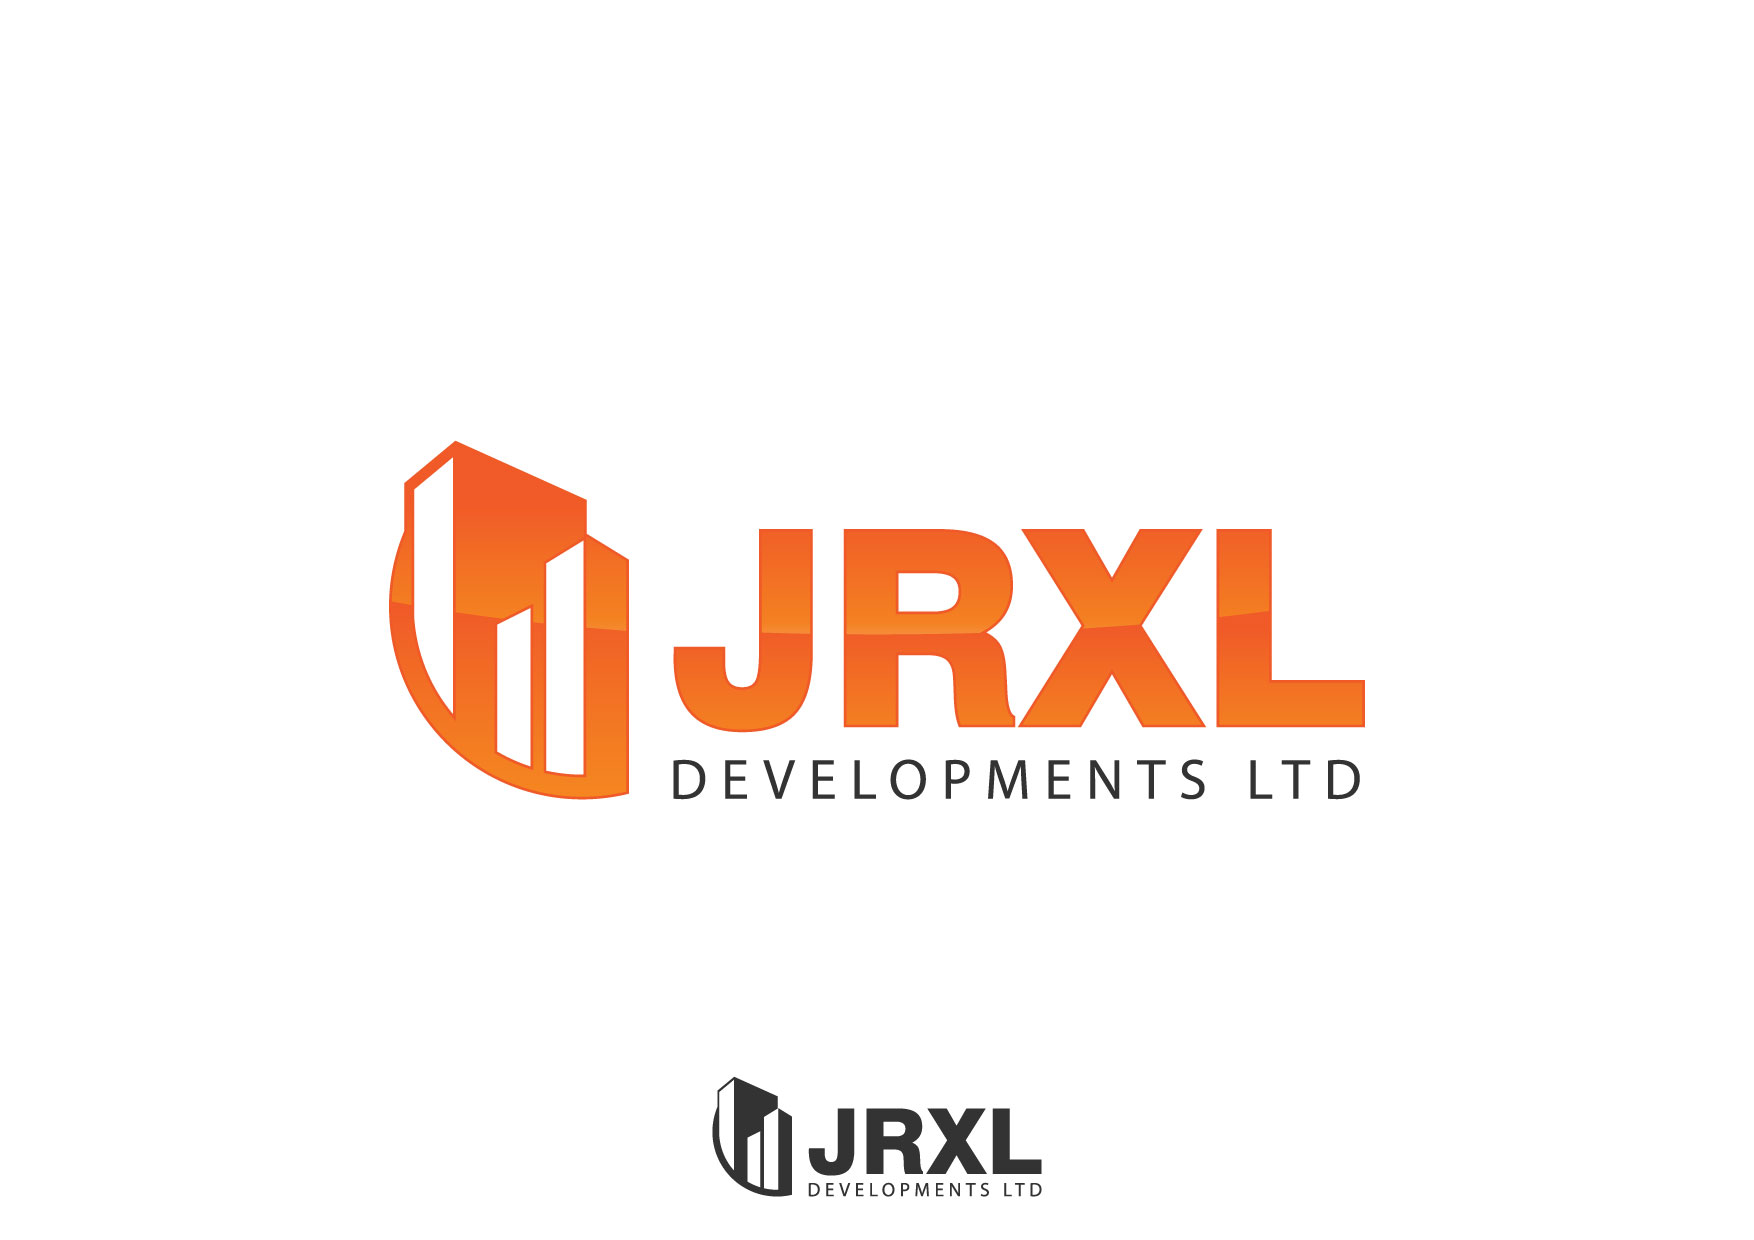 Logo Design by Nurgalih Destianto - Entry No. 54 in the Logo Design Contest JRXL DEVELOPMENTS LTD Logo Design.